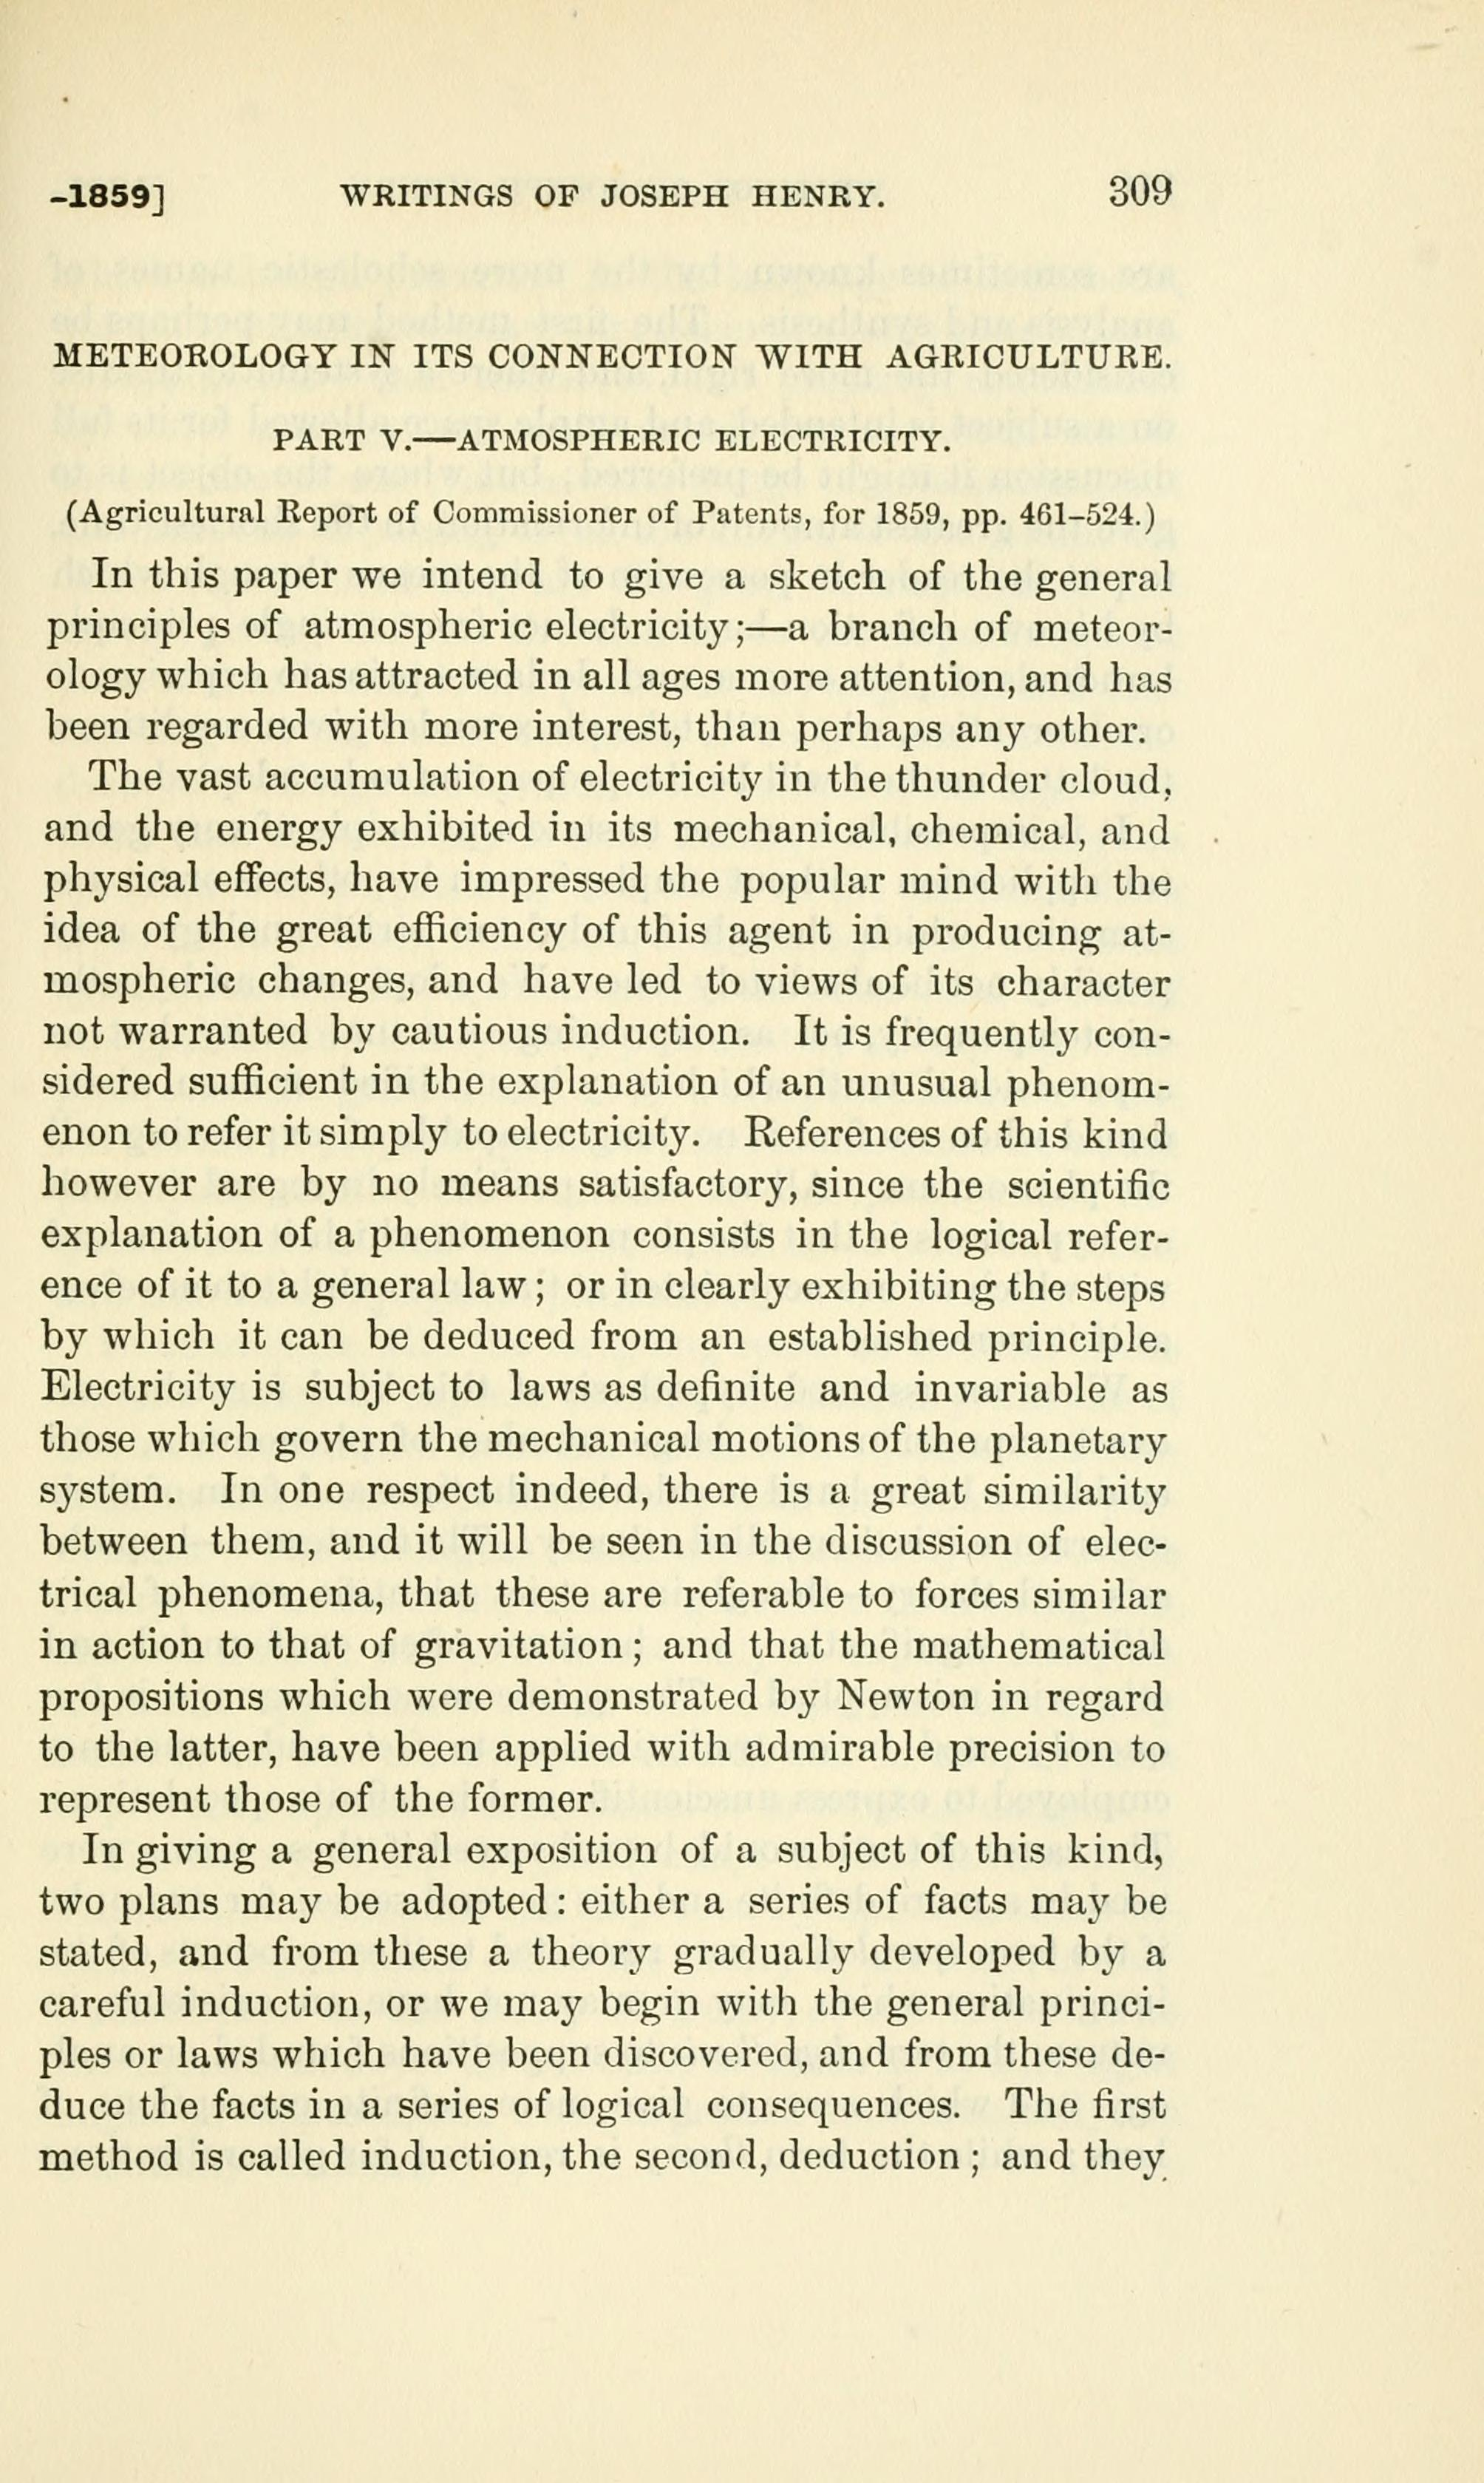 For complete text of this work, see http://biodiversitylibrary.org/page/9078110.